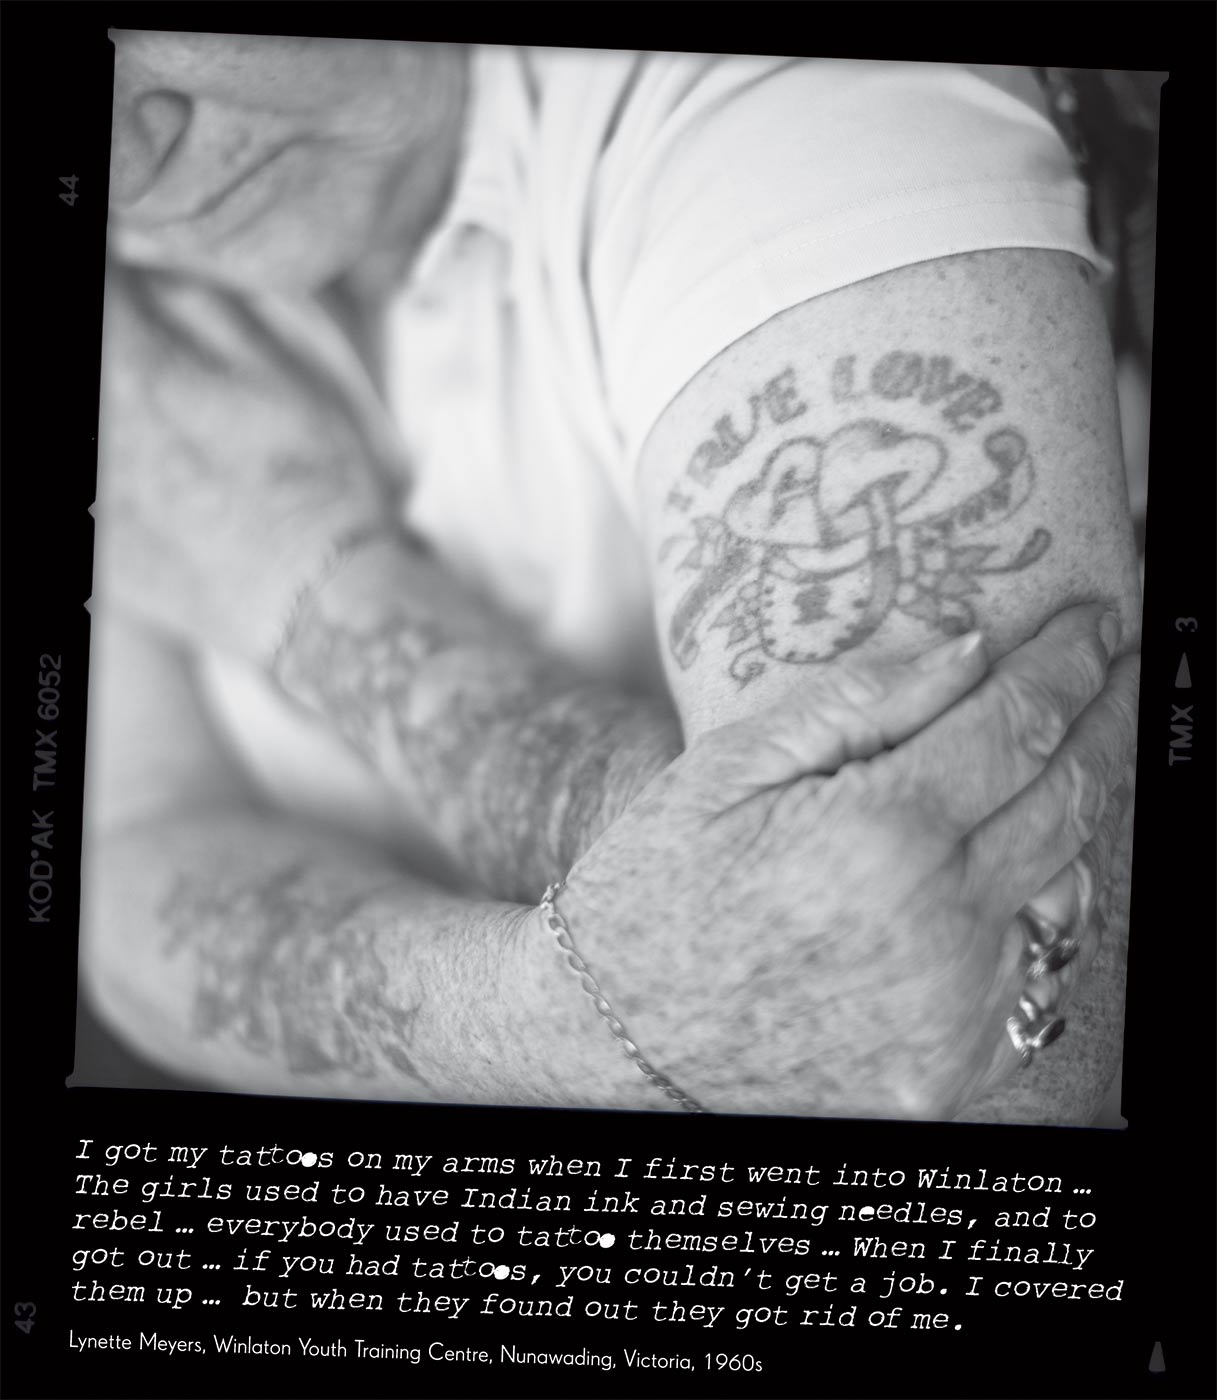 Black and white photo of a woman's tattooed arms.  The photo caption reads 'I got my tattoos on my arms when I first went into Winlator ... The girls used to have Indian ink and sewing needles, and to rebel ... everybody used to tattoo themselves ... When I finally got out ... if you had tattoos, you couldn't get a job.  I covered them up .. but when they found out they got rid of me' attributed to 'Lynette Meyers, Winlaton Youth Training Centre, Nunawading, Victoria, 1960s'. - click to view larger image